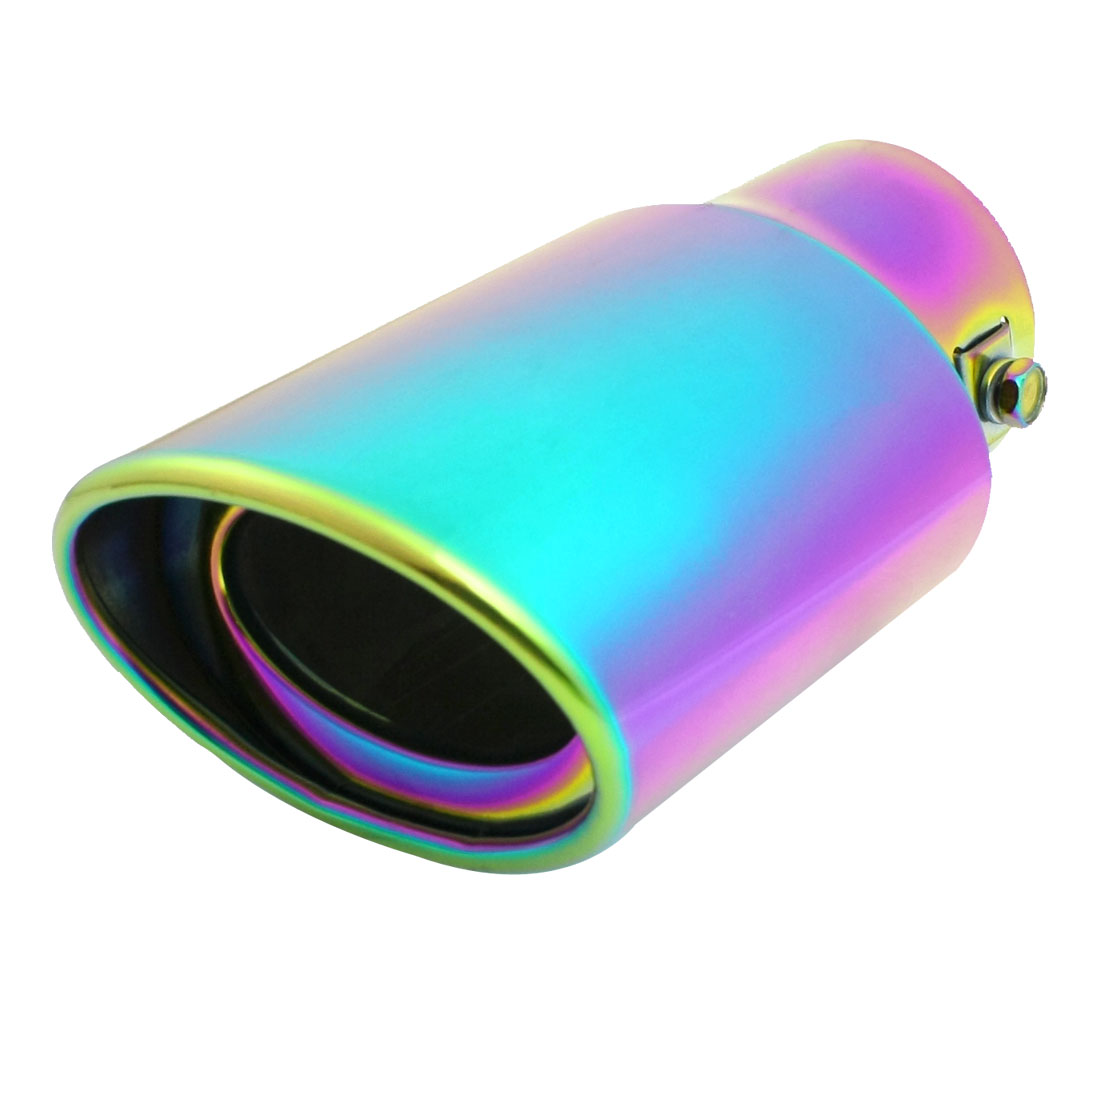 "Colorful Exhaust Pipe Silencer Tail Muffler Tip 2.4"" Inlet Dia for Vehicle"